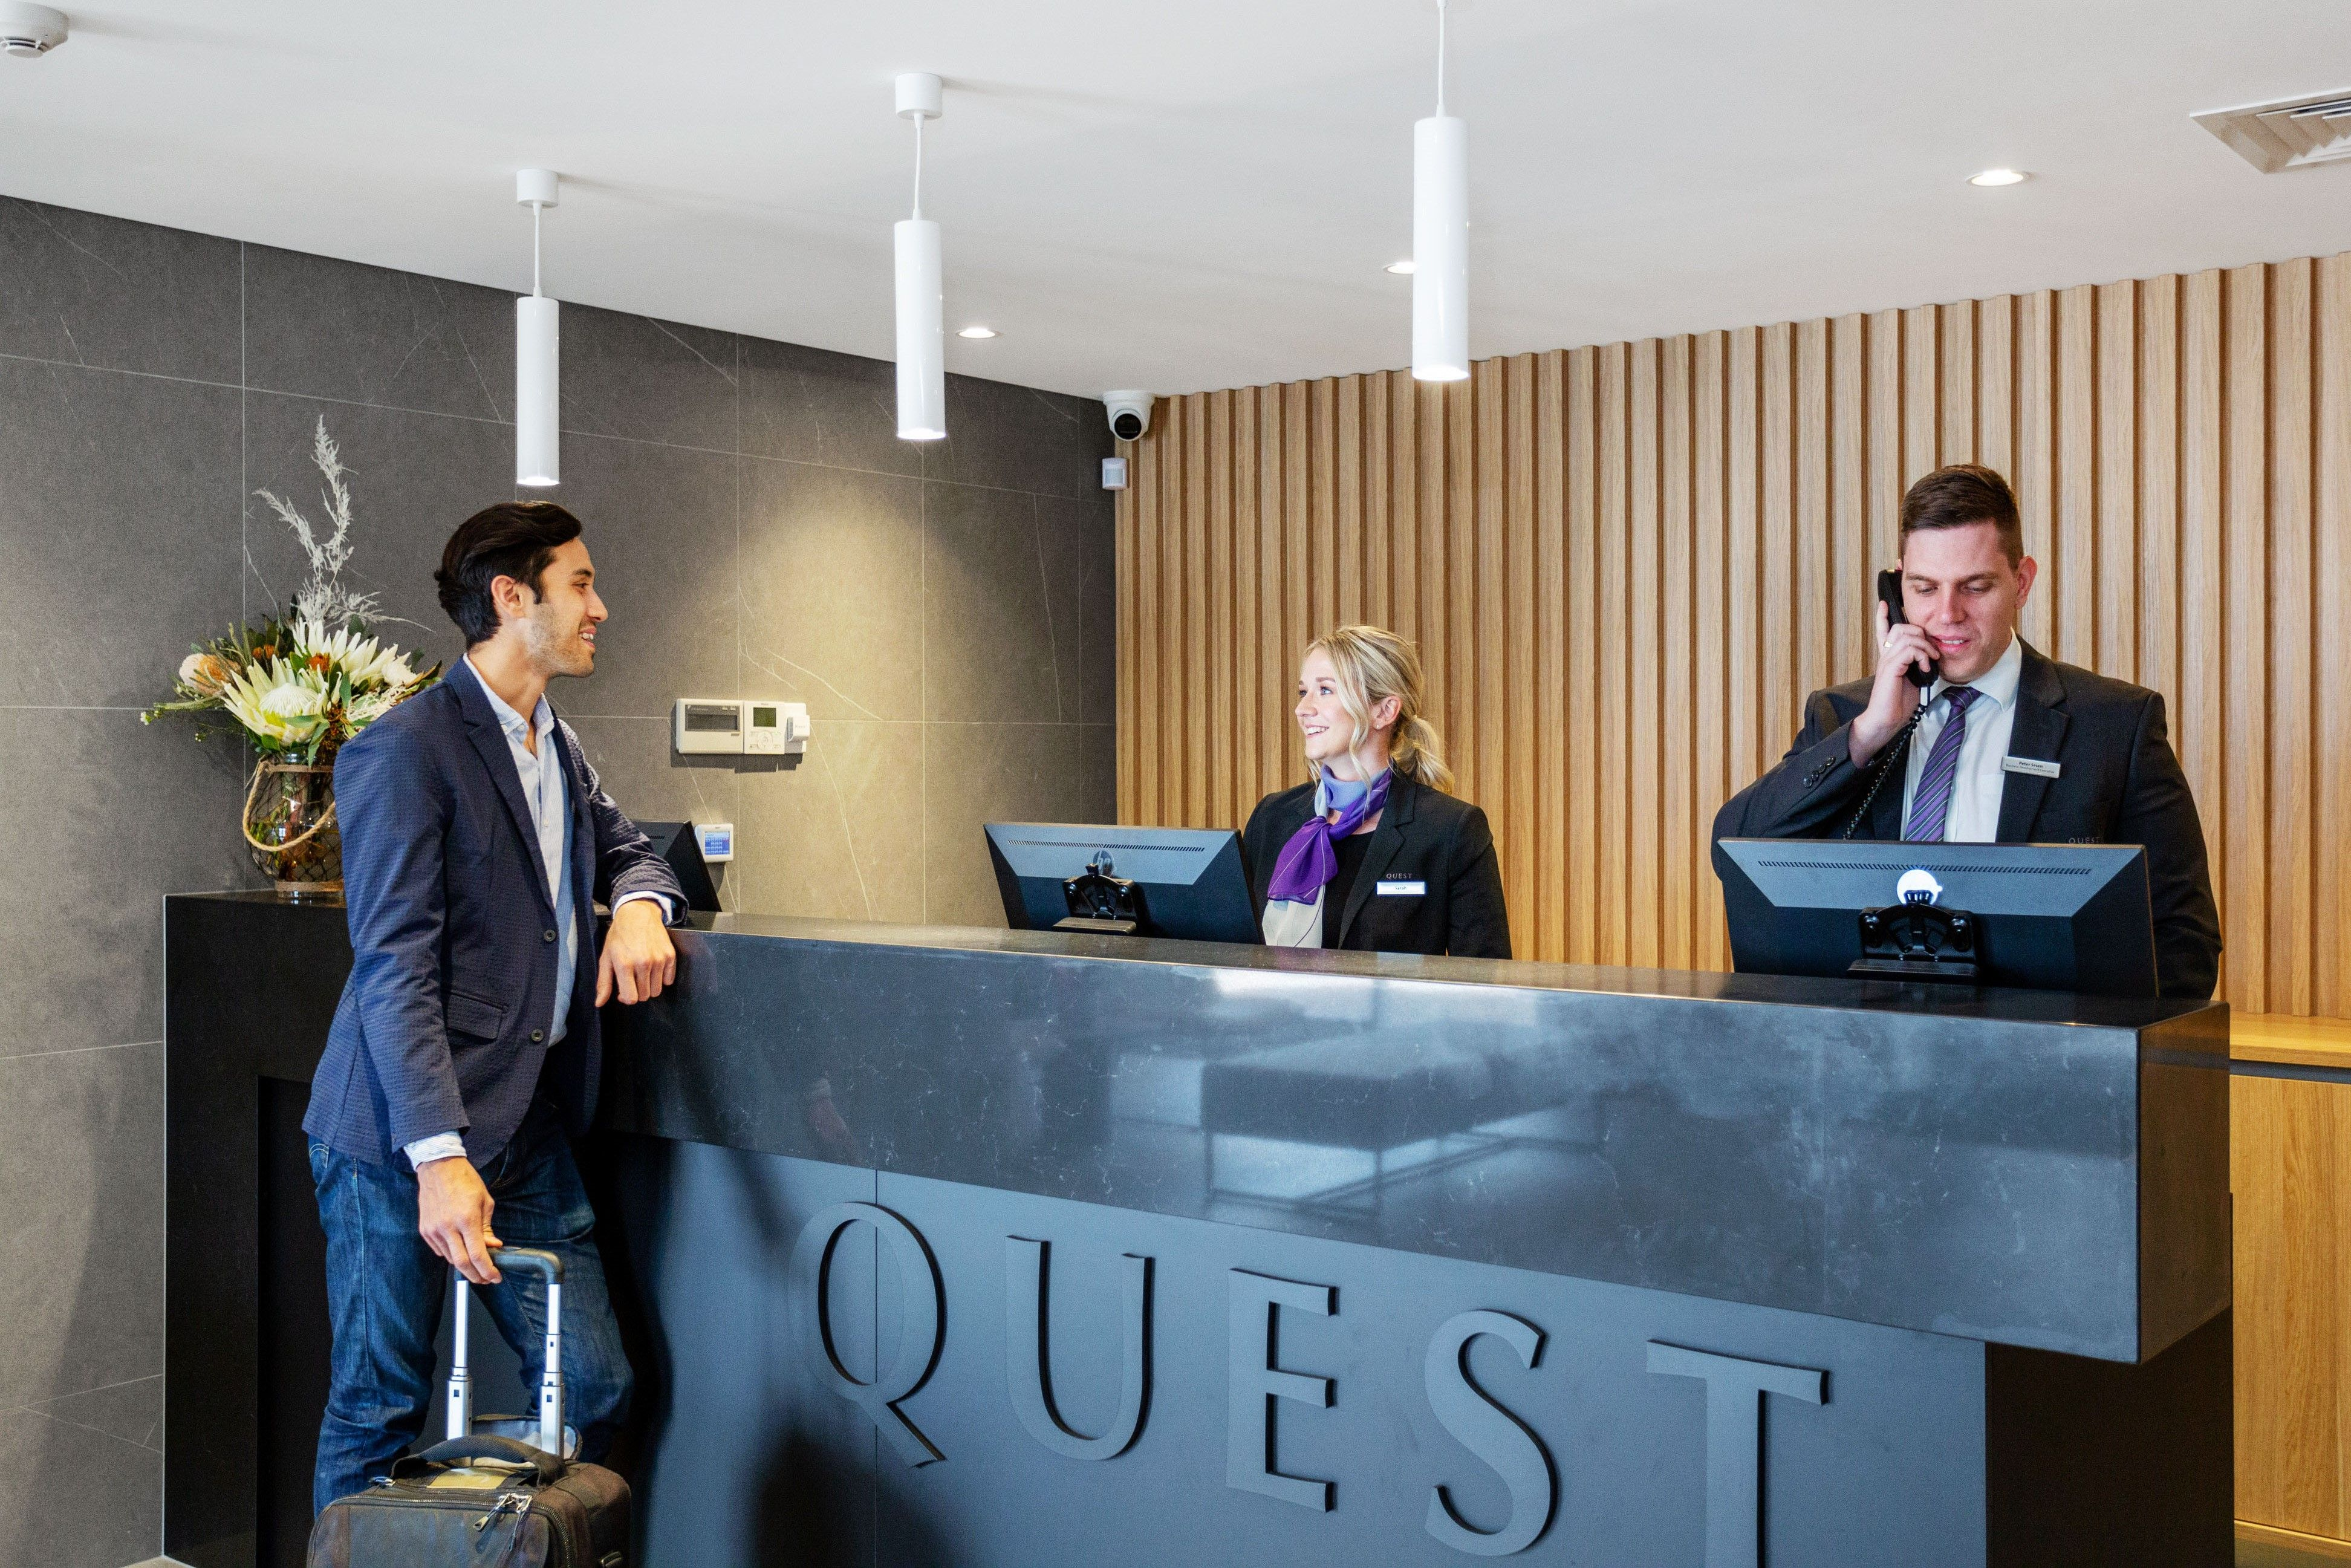 Quest awarded 5-star rating again | Inside Franchise Business Executive